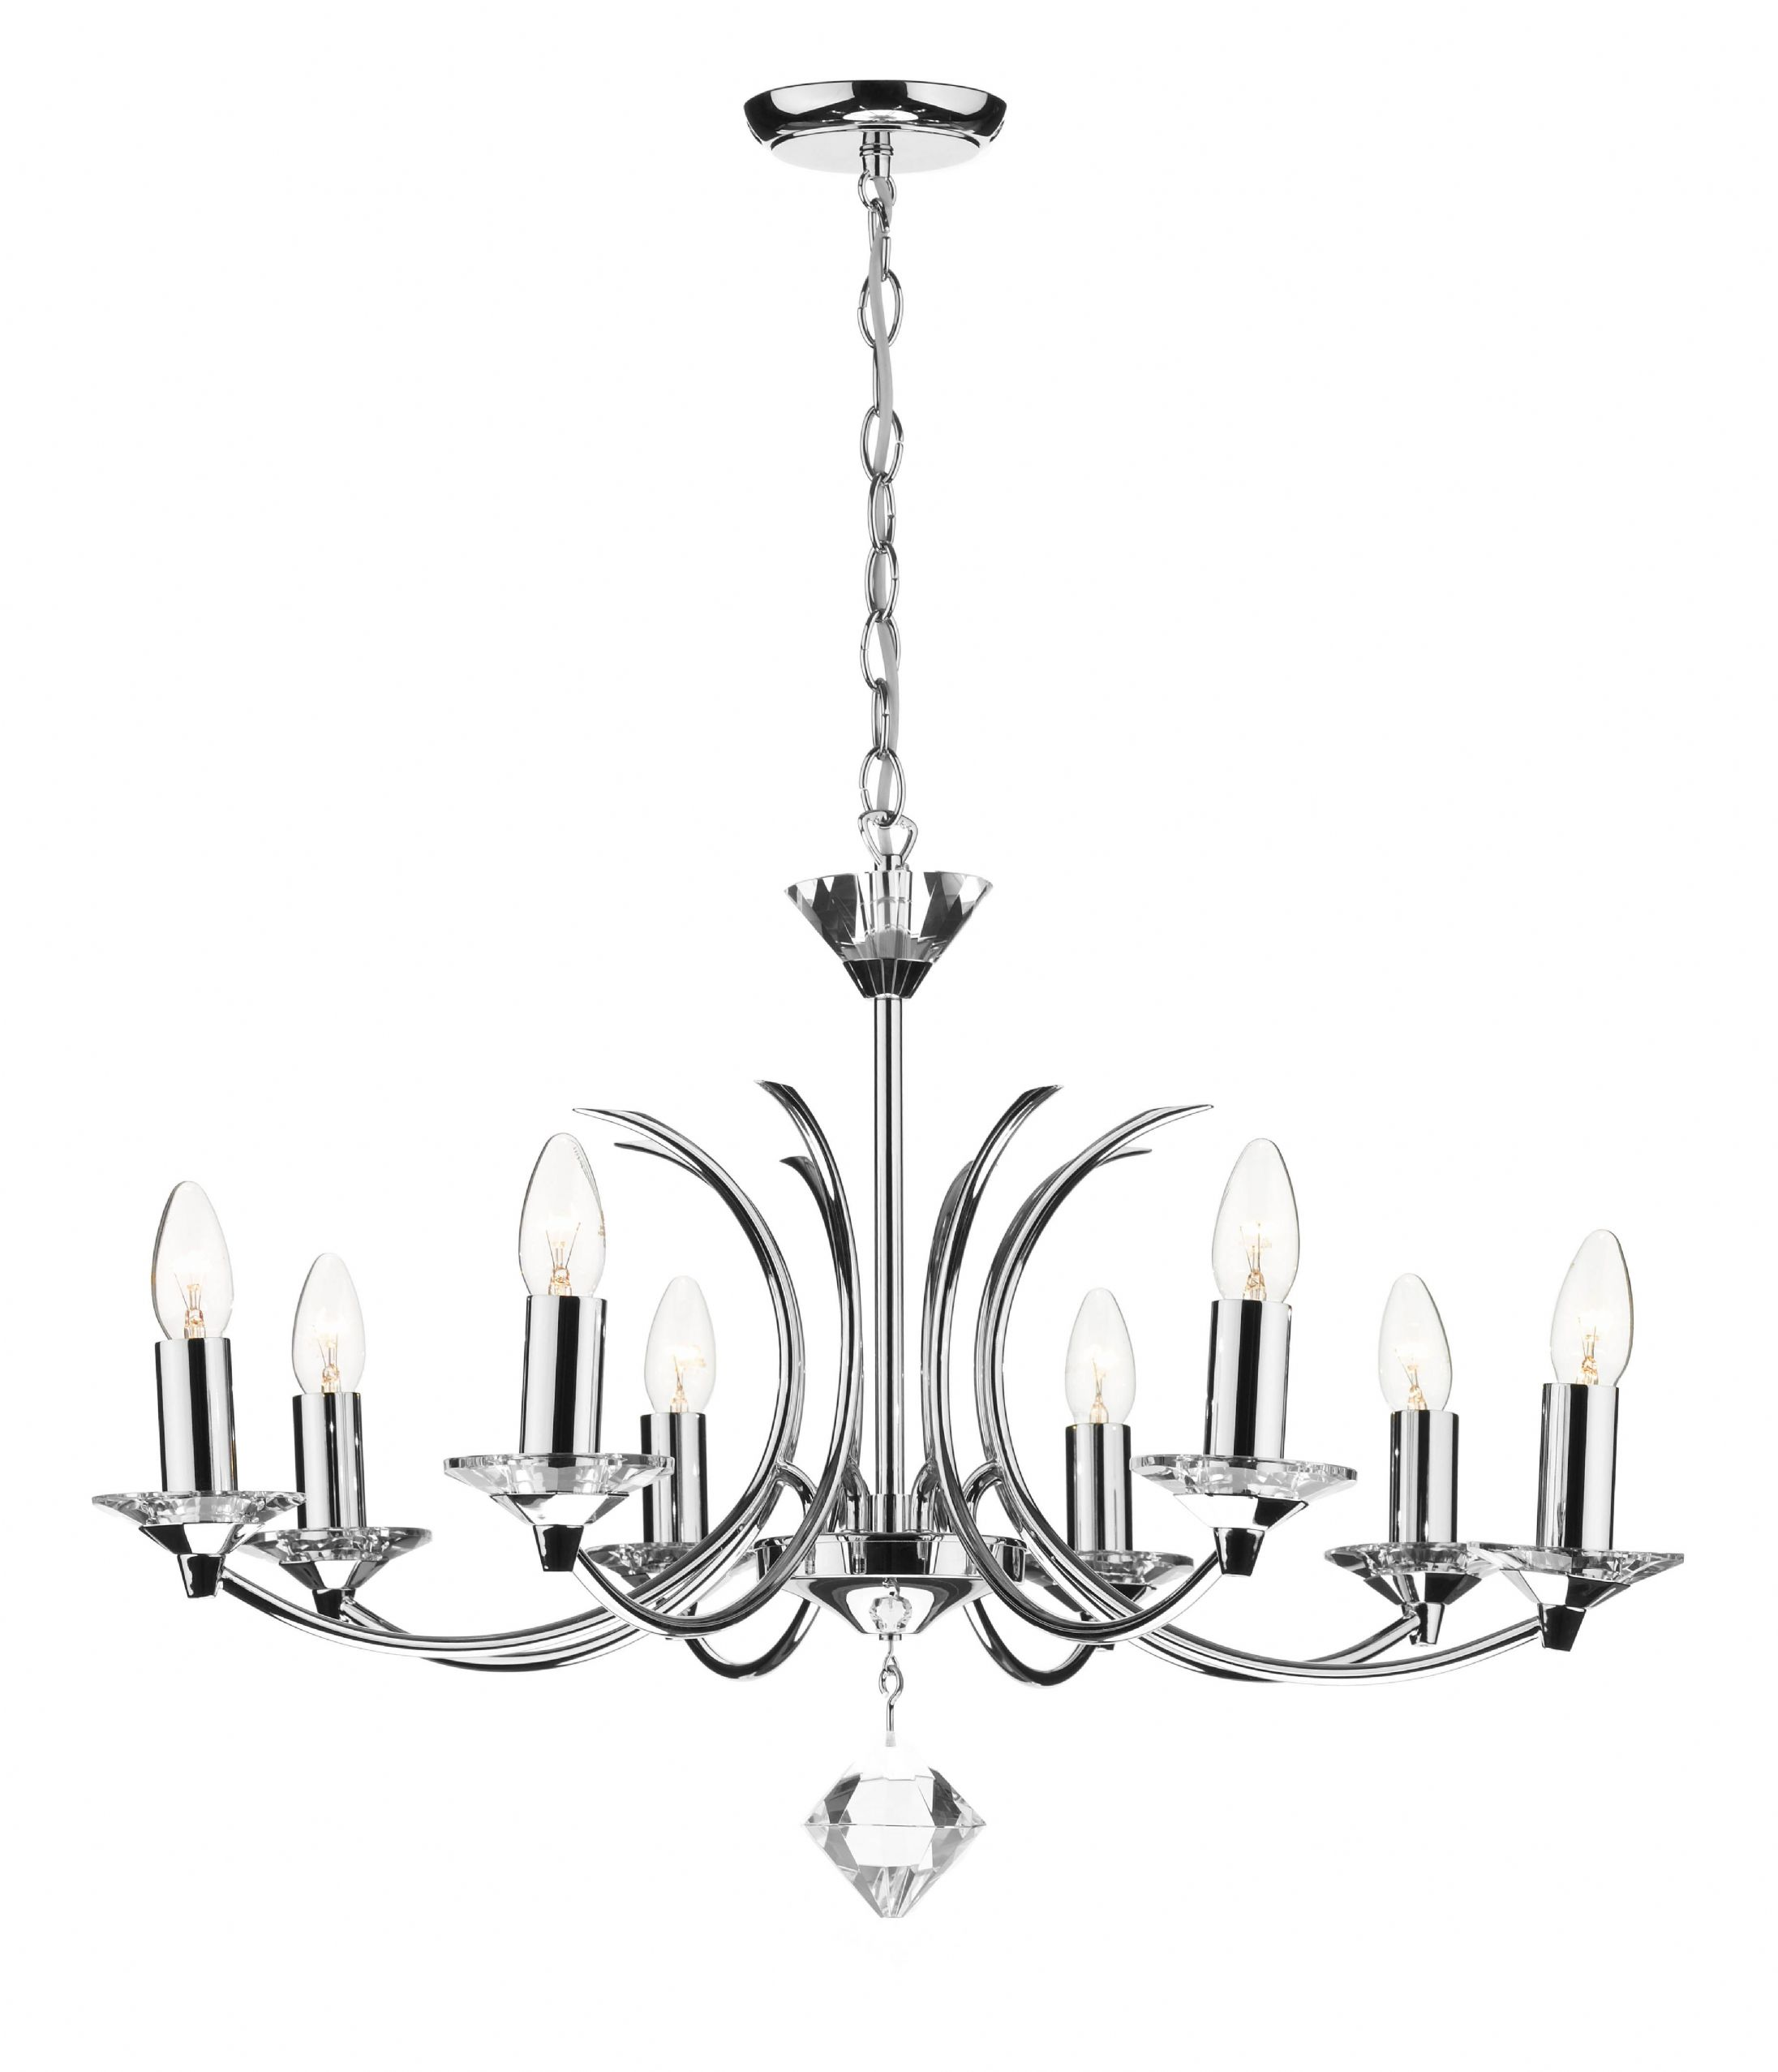 Medusa 8 Light Polished Chrome K9 Crystal Ceiling Light